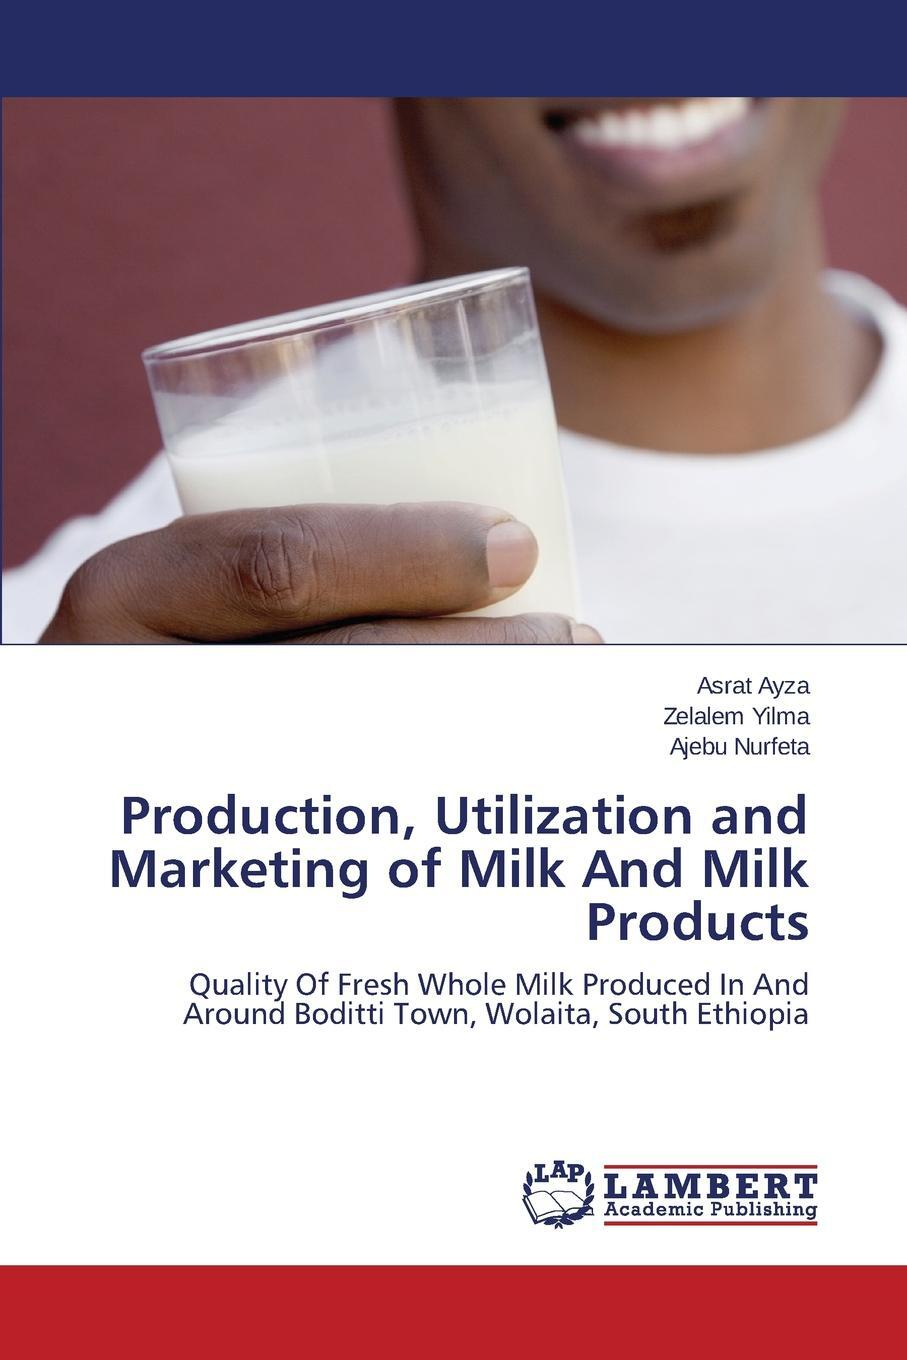 Production, Utilization and Marketing of Milk And Milk Products